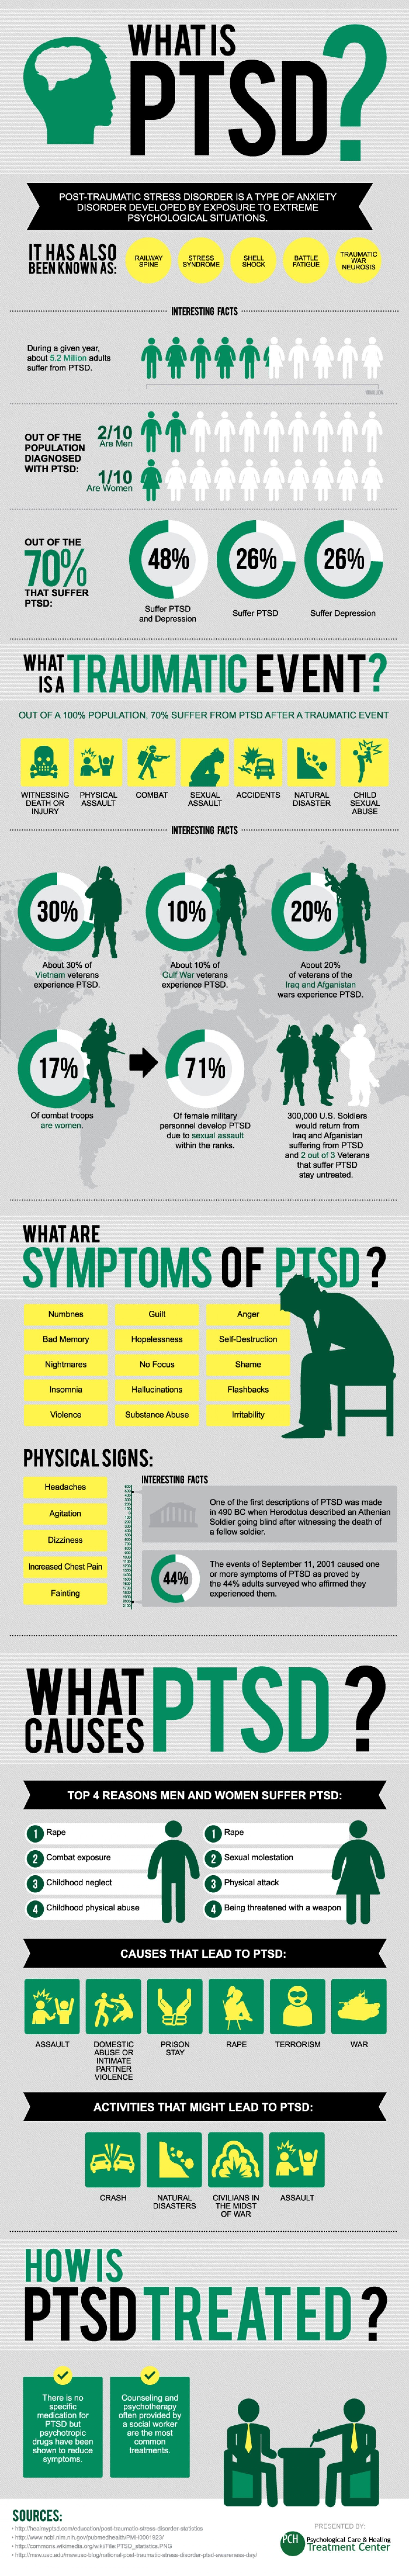 a description of the effects of post traumatic stress disorder to people Post traumatic stress disorder (ptsd) is an anxiety disorder that can develop after experiencing or witnessing a traumatic event, or learning that a traumatic dsm5 defines a traumatic event as exposure to actual or threatened death, serious injury, or sexual violence.